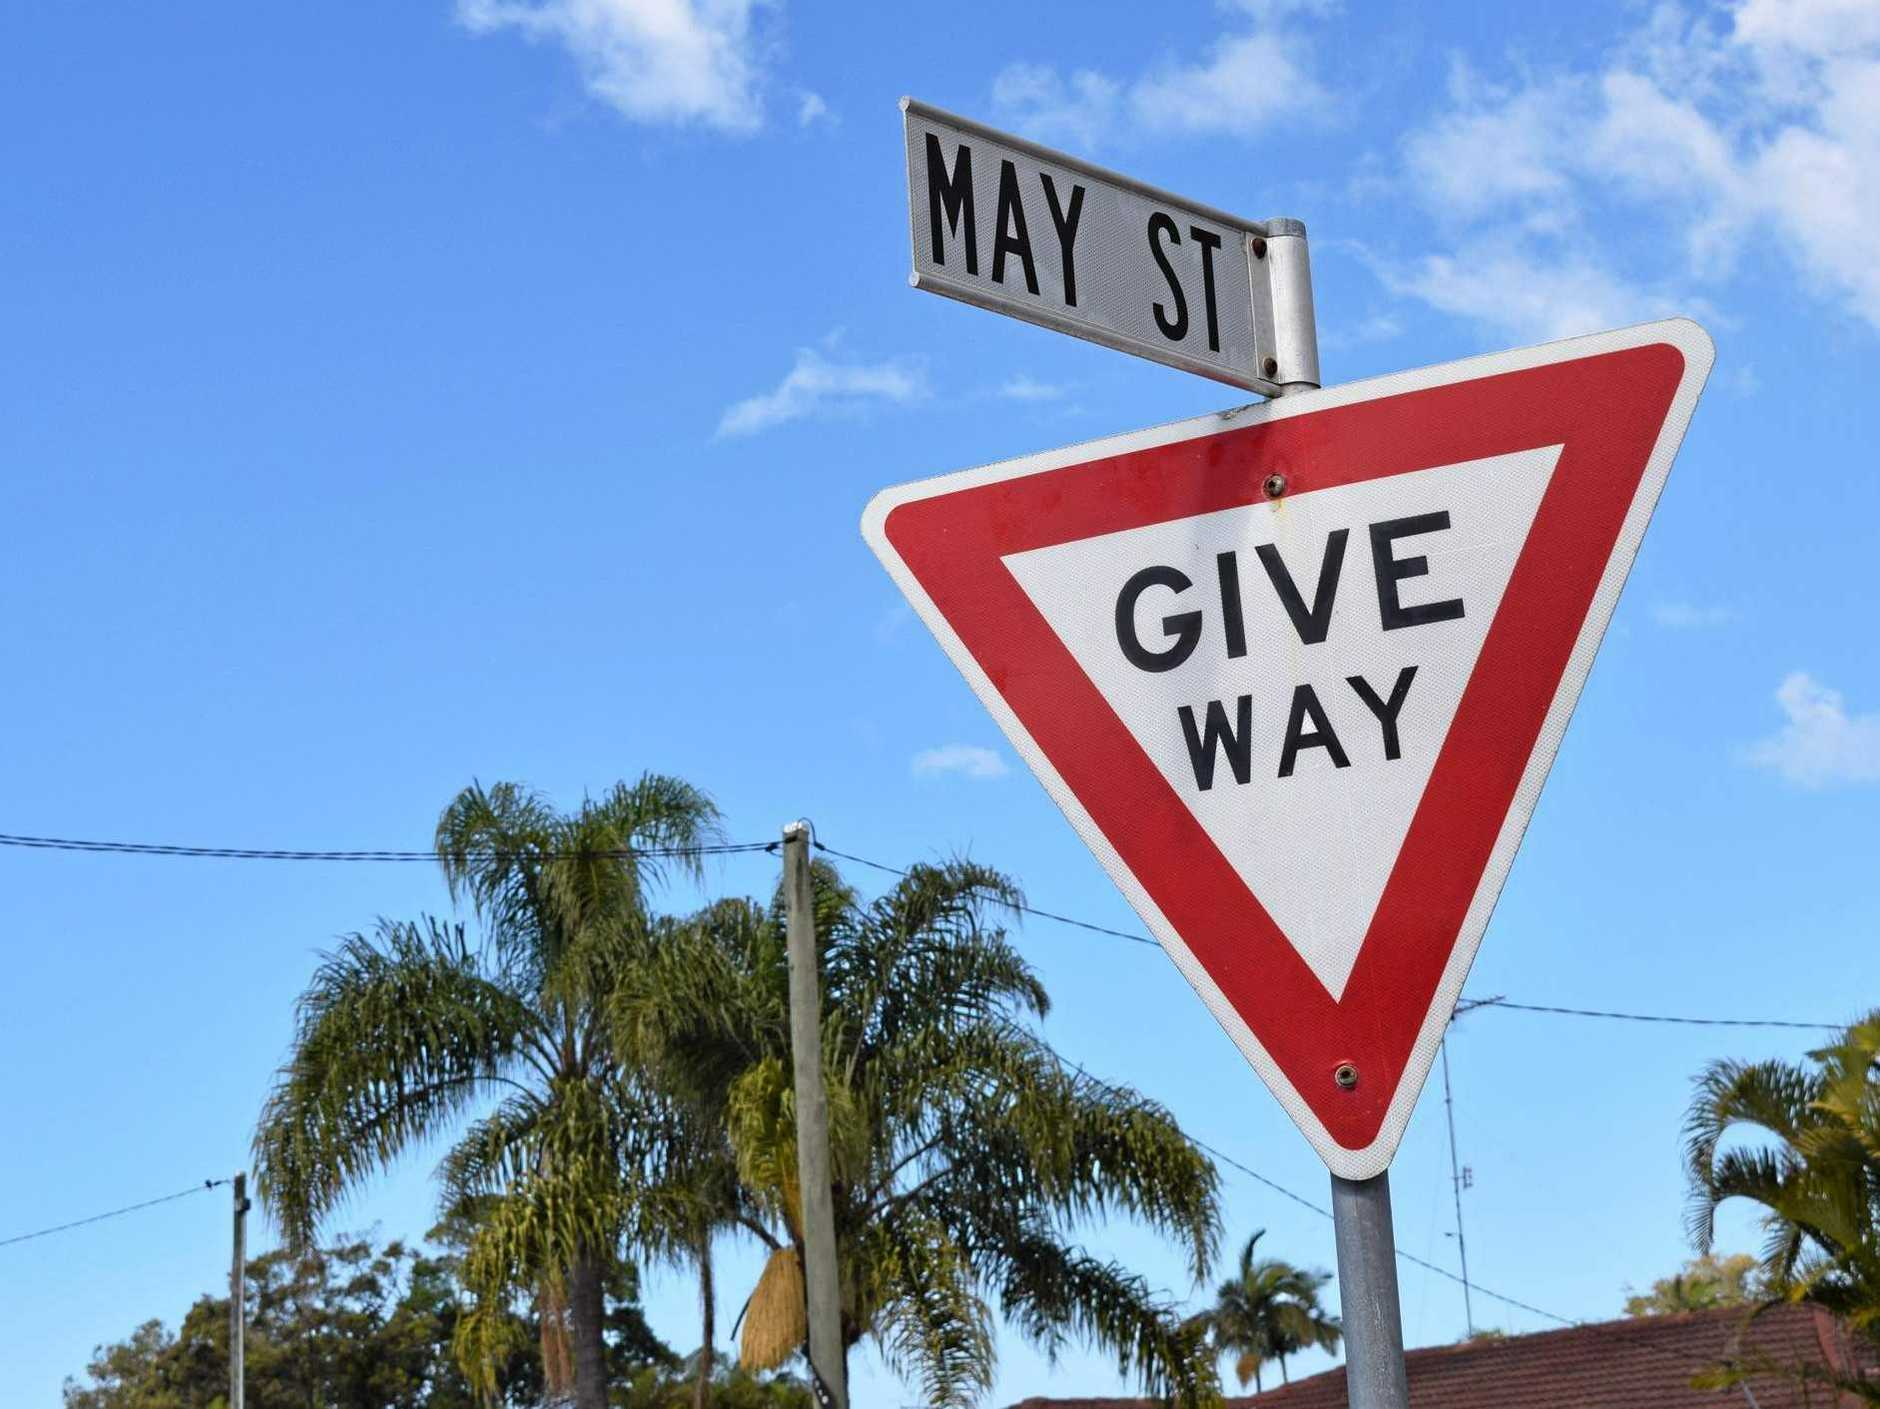 Maroochydore street, May St was among the worst spots for car thefts across the Sunshine Coast.